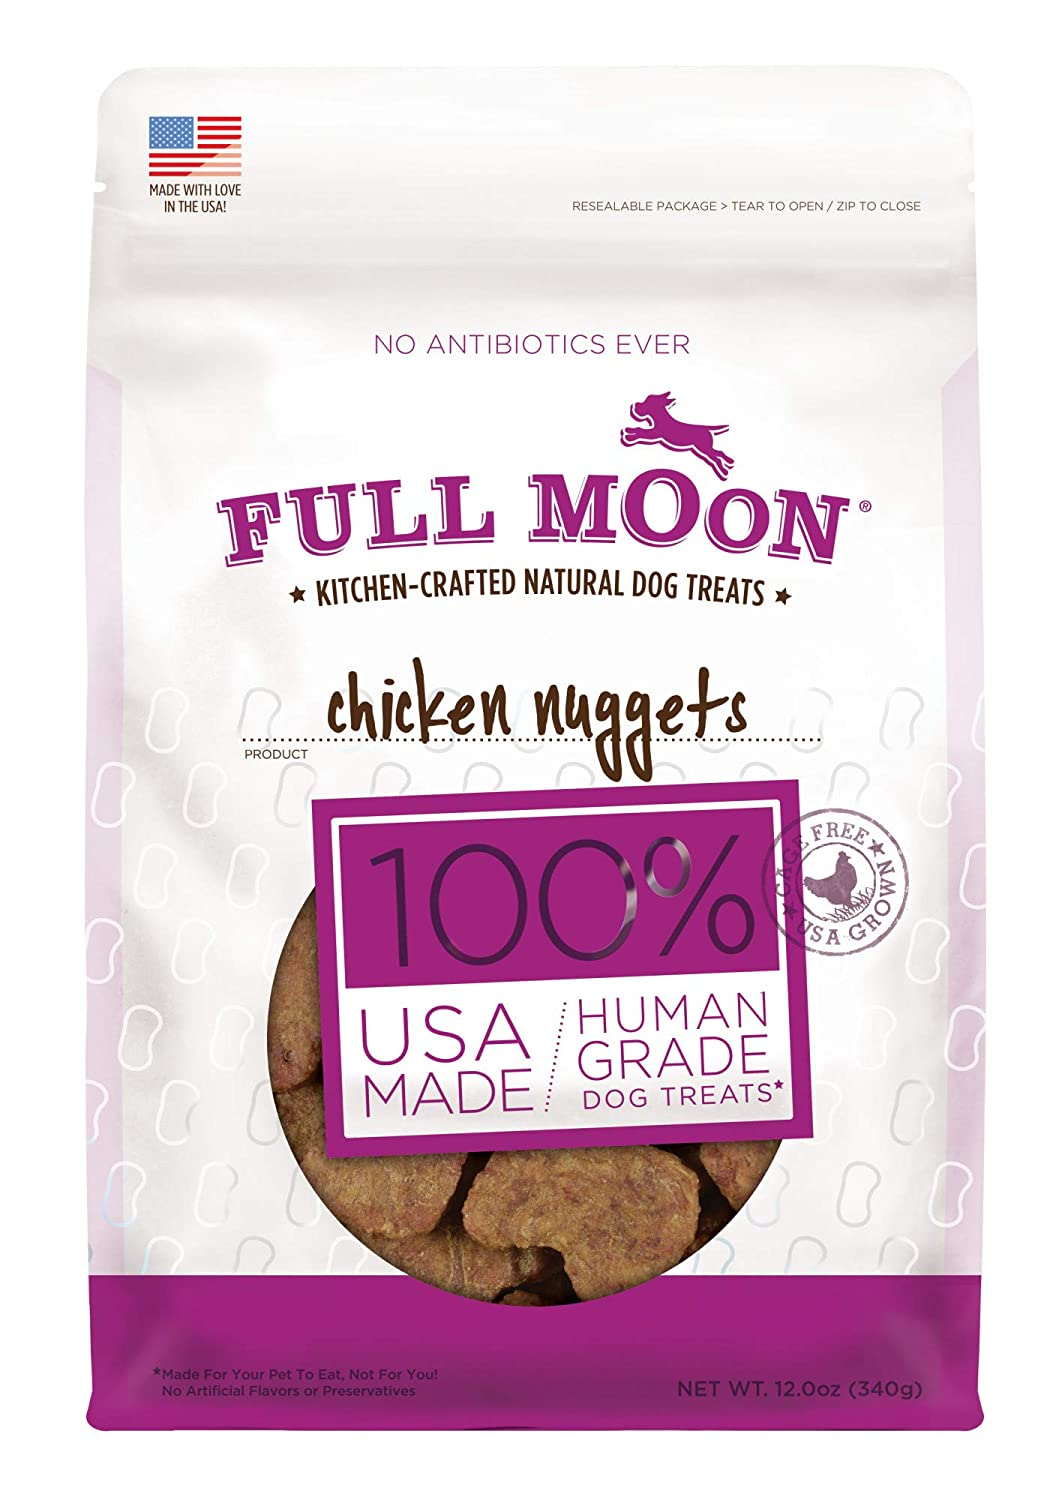 Full Moon All Natural Human Grade Chicken Nugget Dog Treats